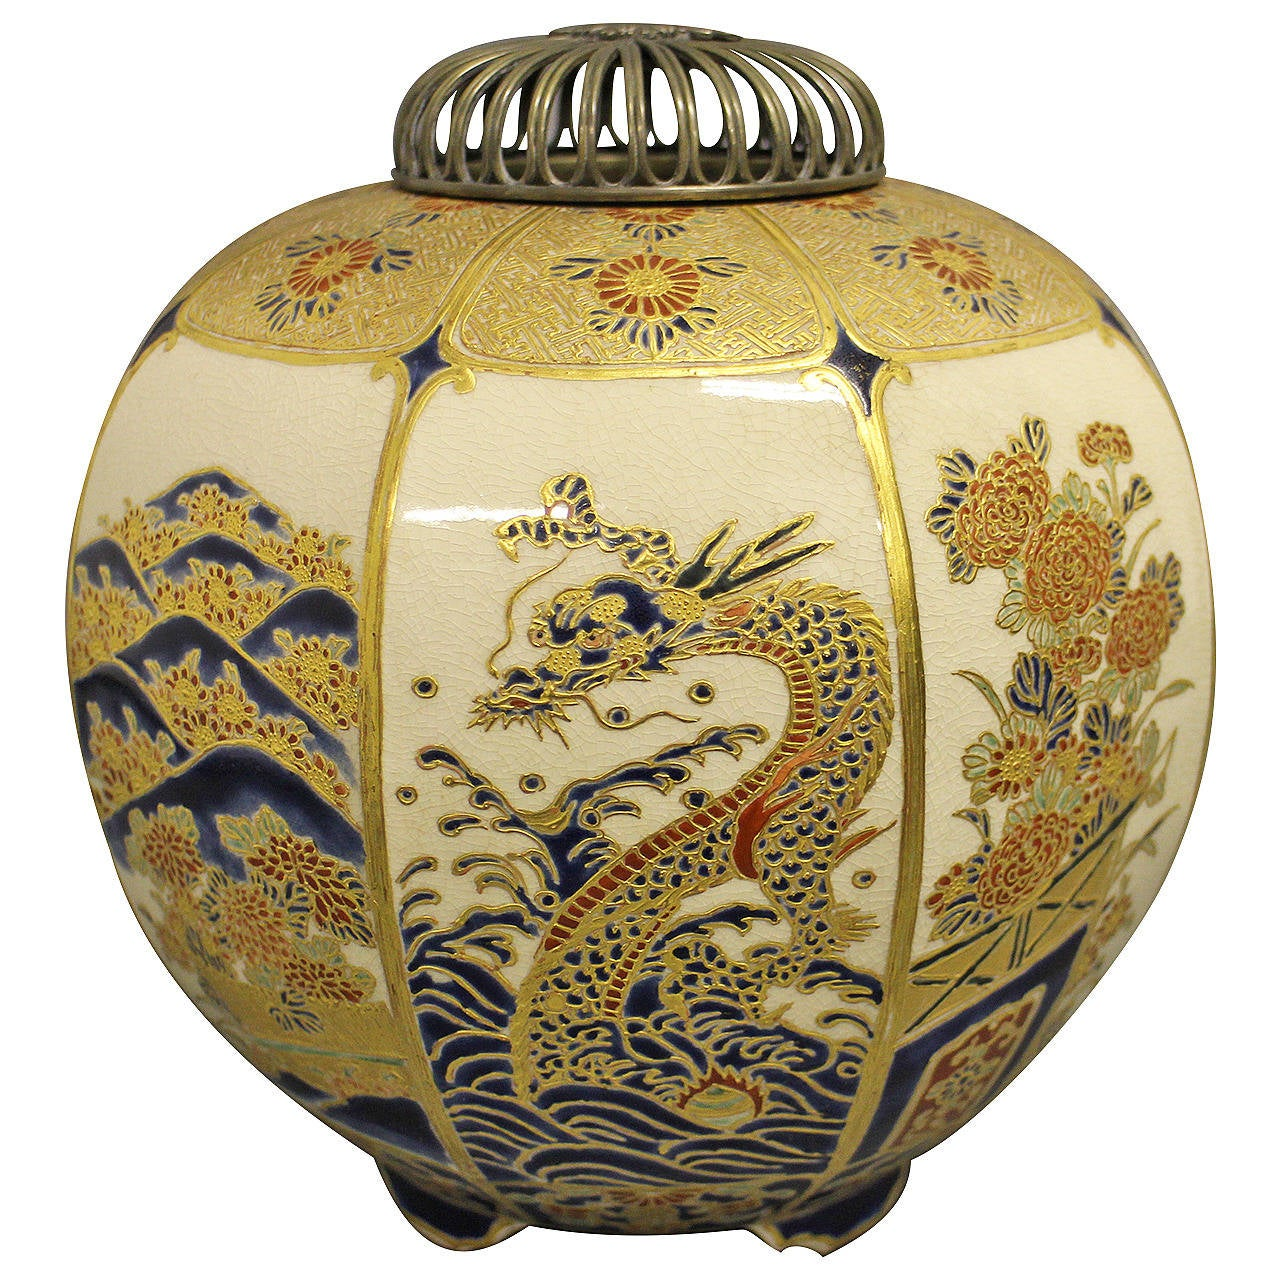 Japanese Imperial Satsuma Koro Decorated With A Dragon At